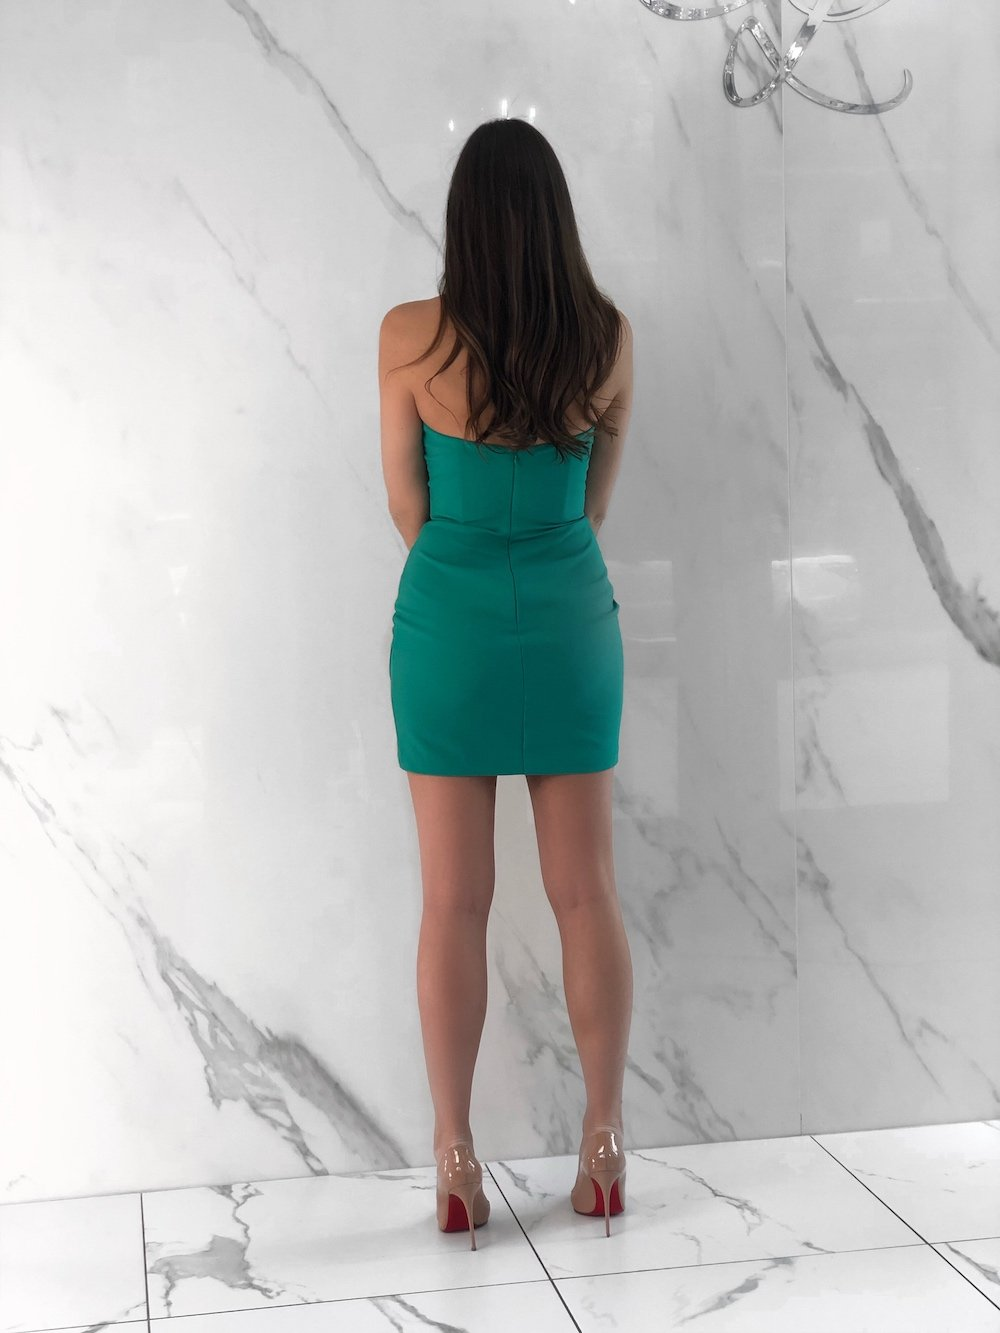 Jax Dress, Women's Green Dresses